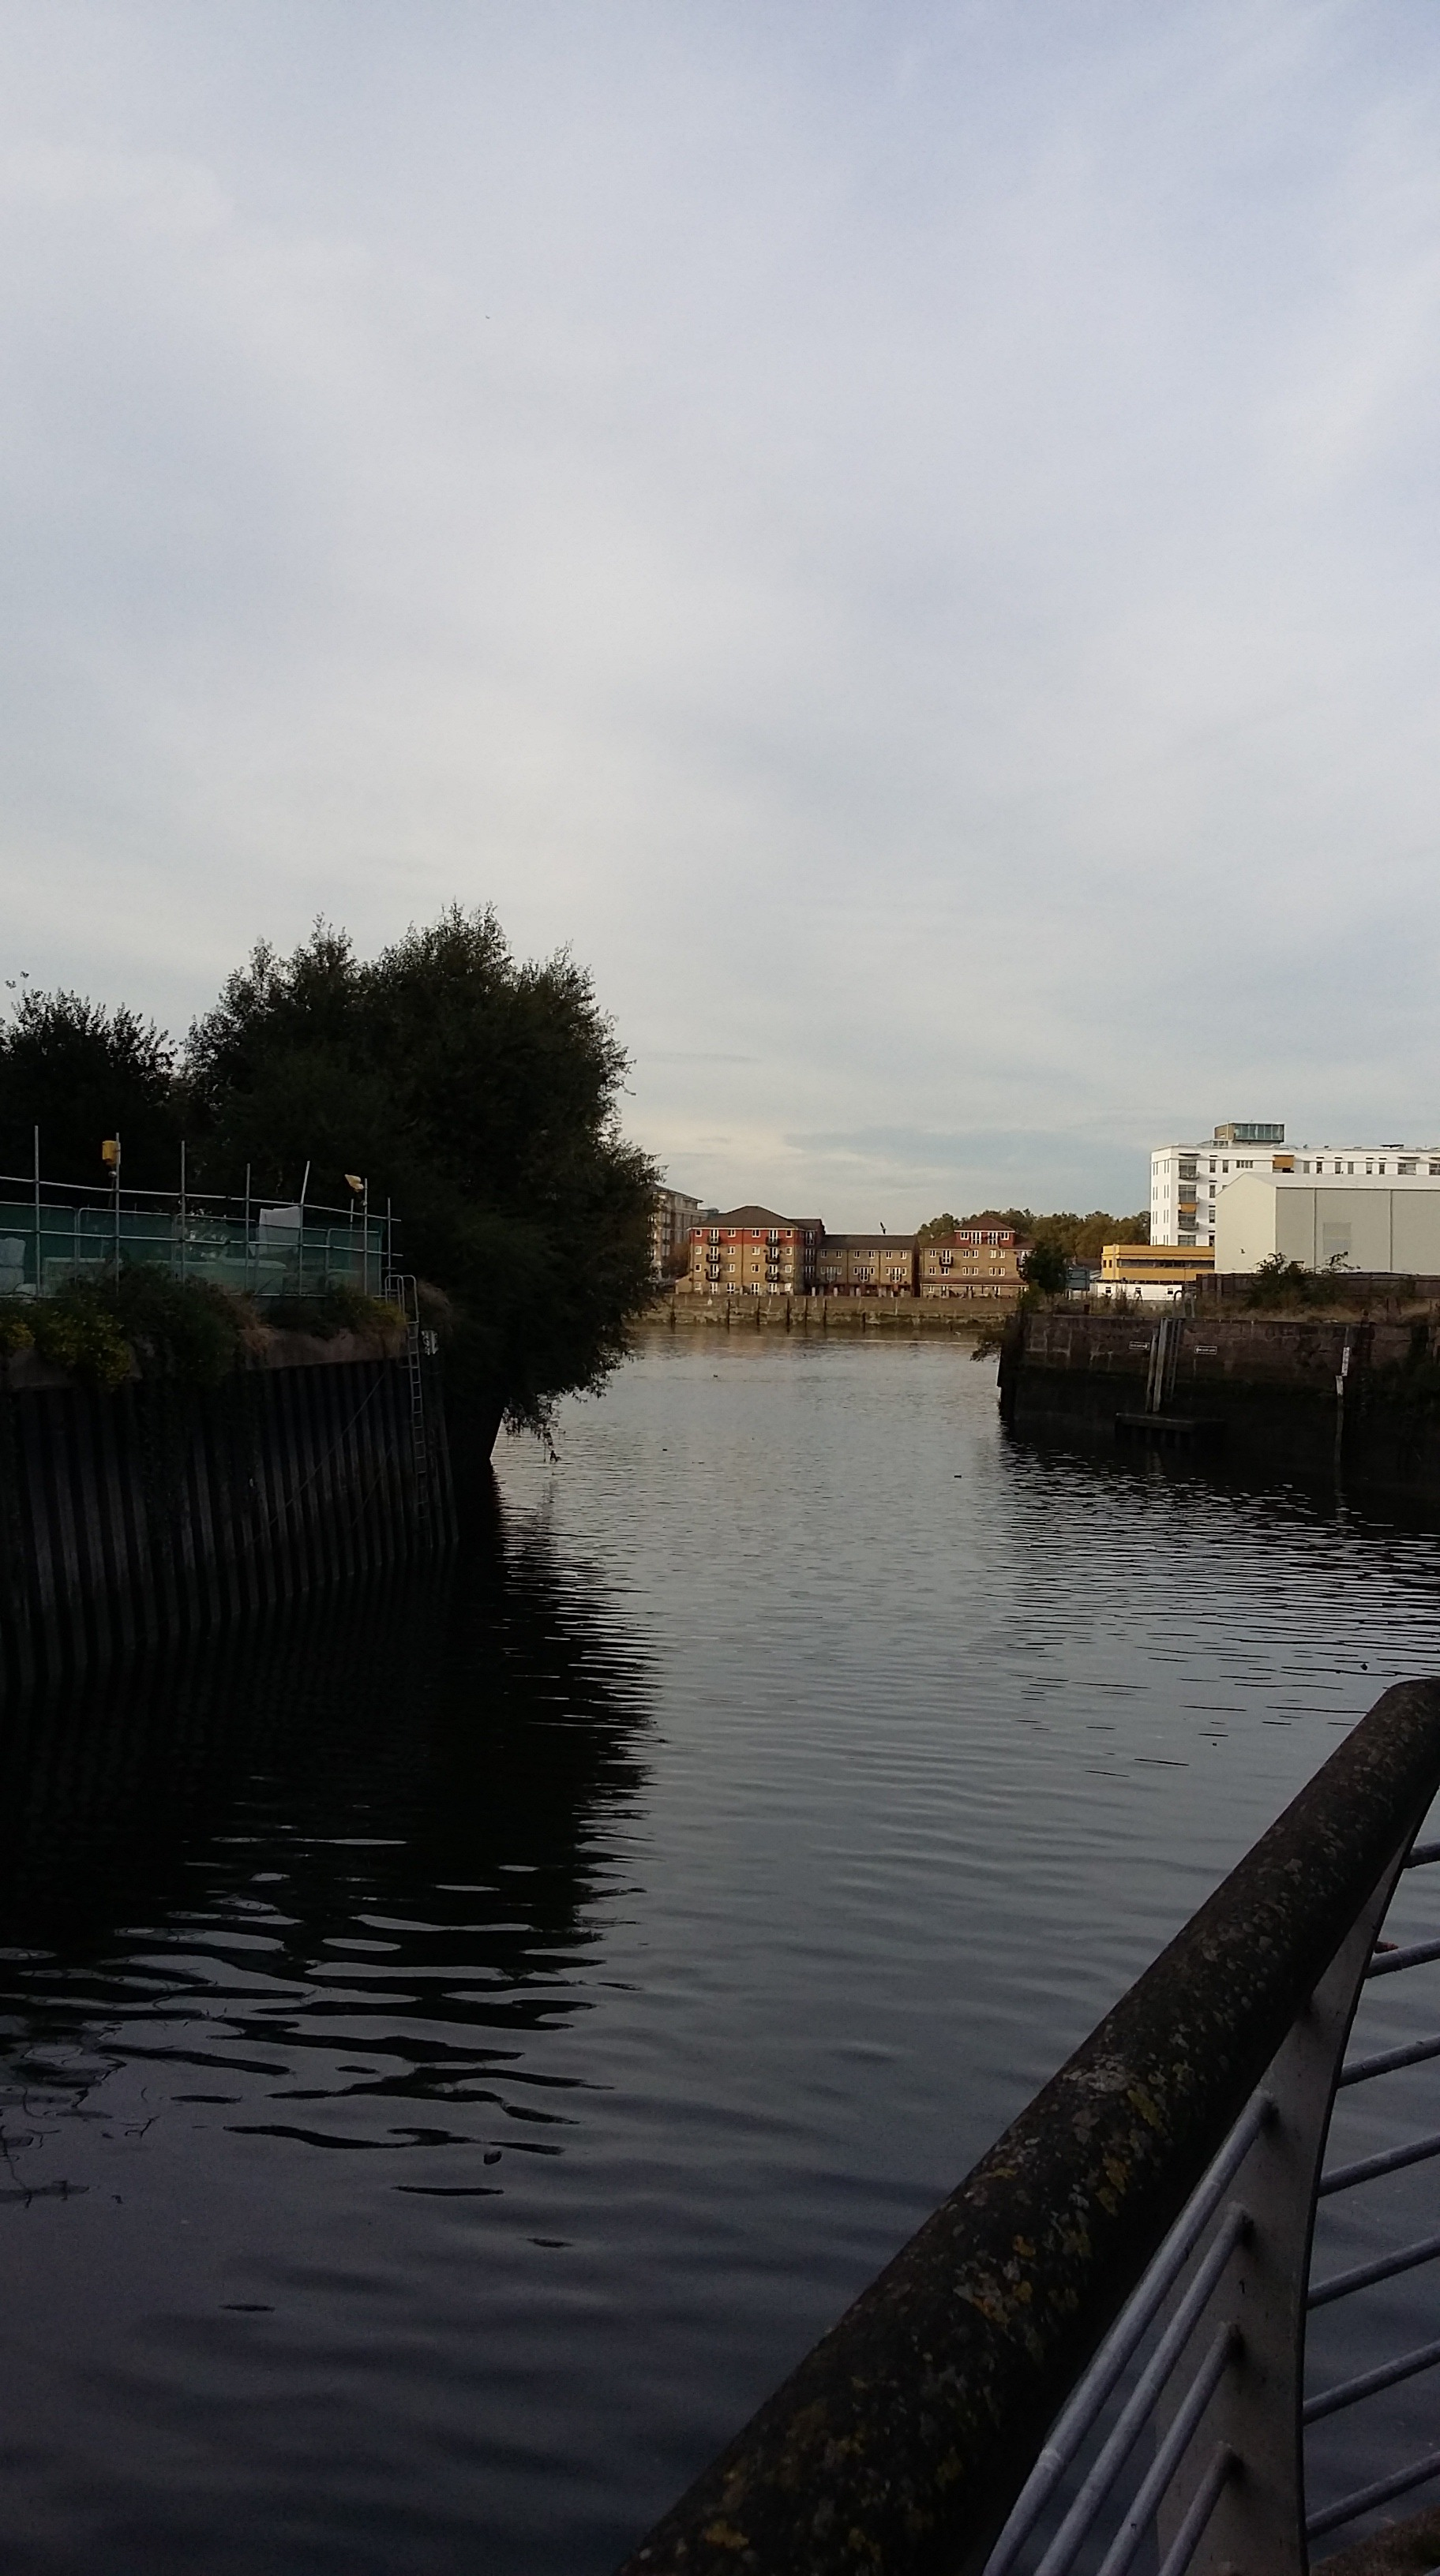 The mouth of the Wandle and the Fulham shore beyond